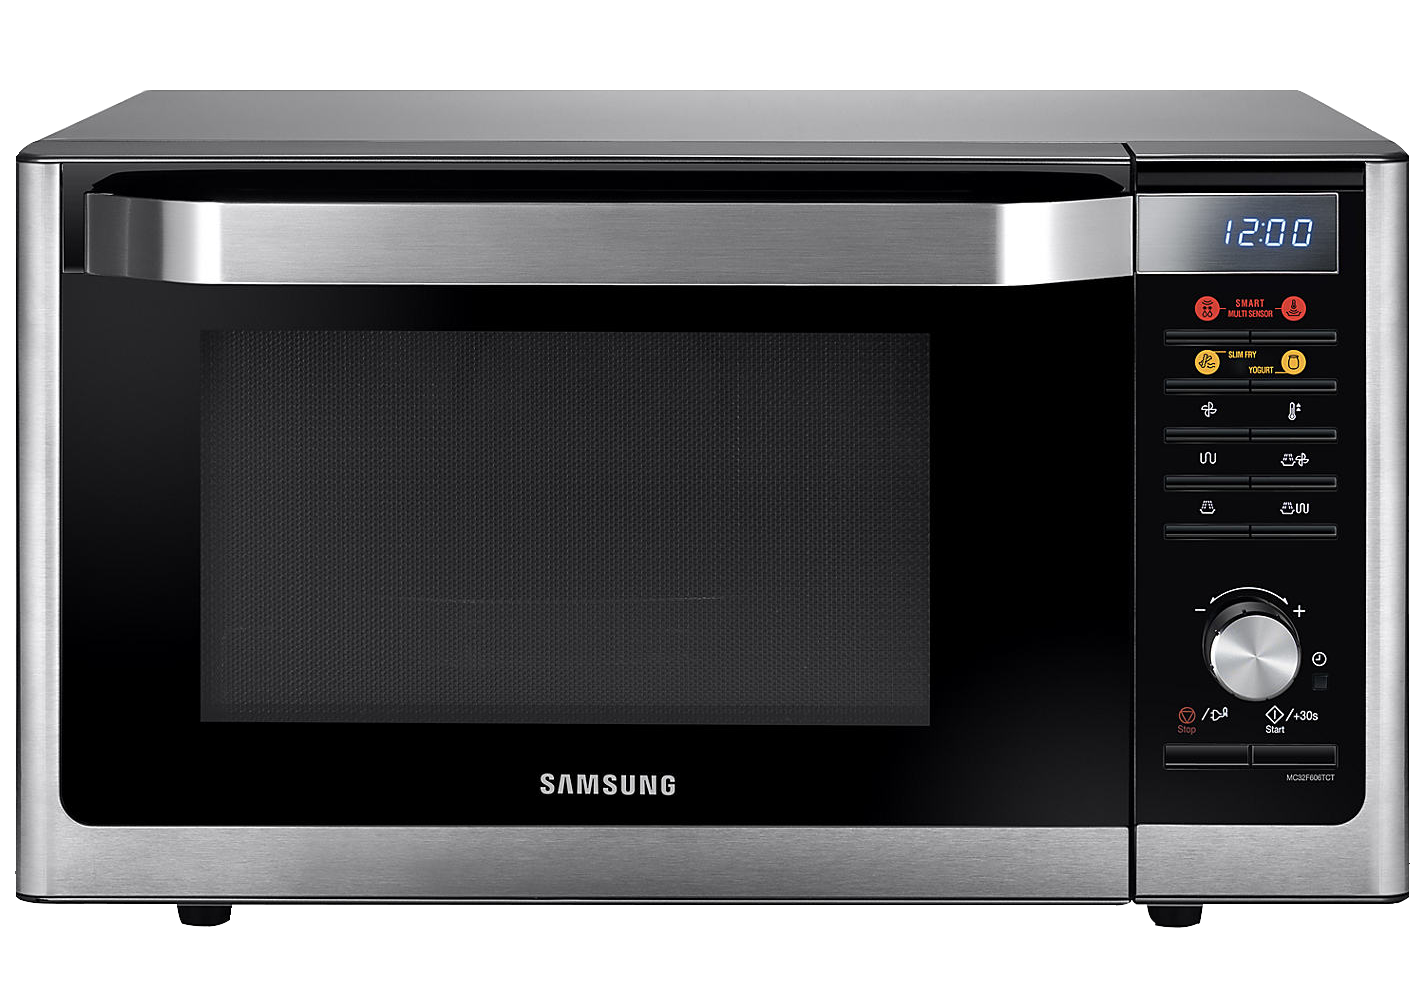 Samsung Convection Microwave Oven Mc32f606tct